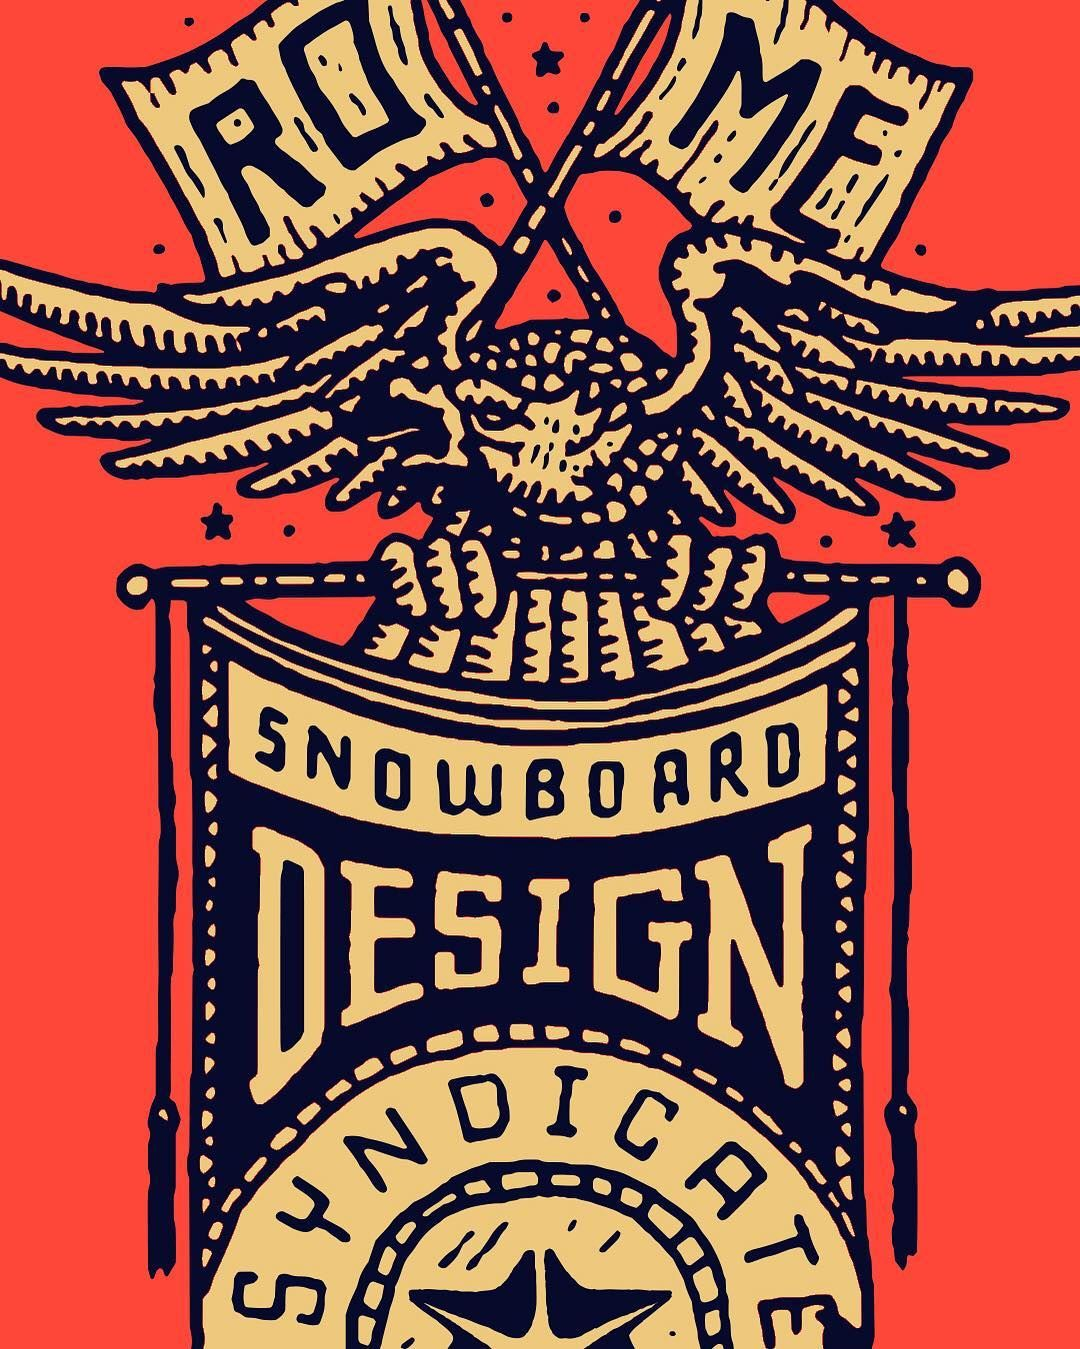 Instagram Photo By Jon Contino May 11 2016 At 3 45pm Utc Graphic Design Print Totem Design Badge Design